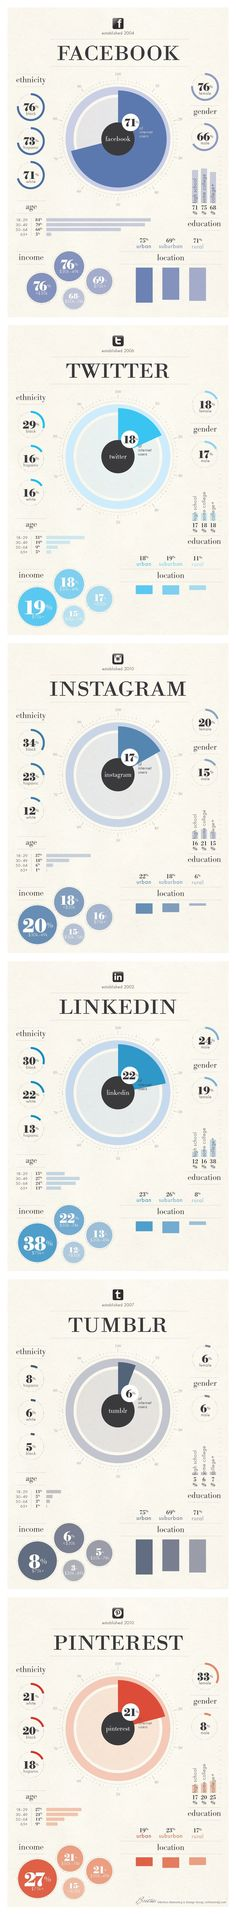 #SocialMedia : User #Demographics #infographic